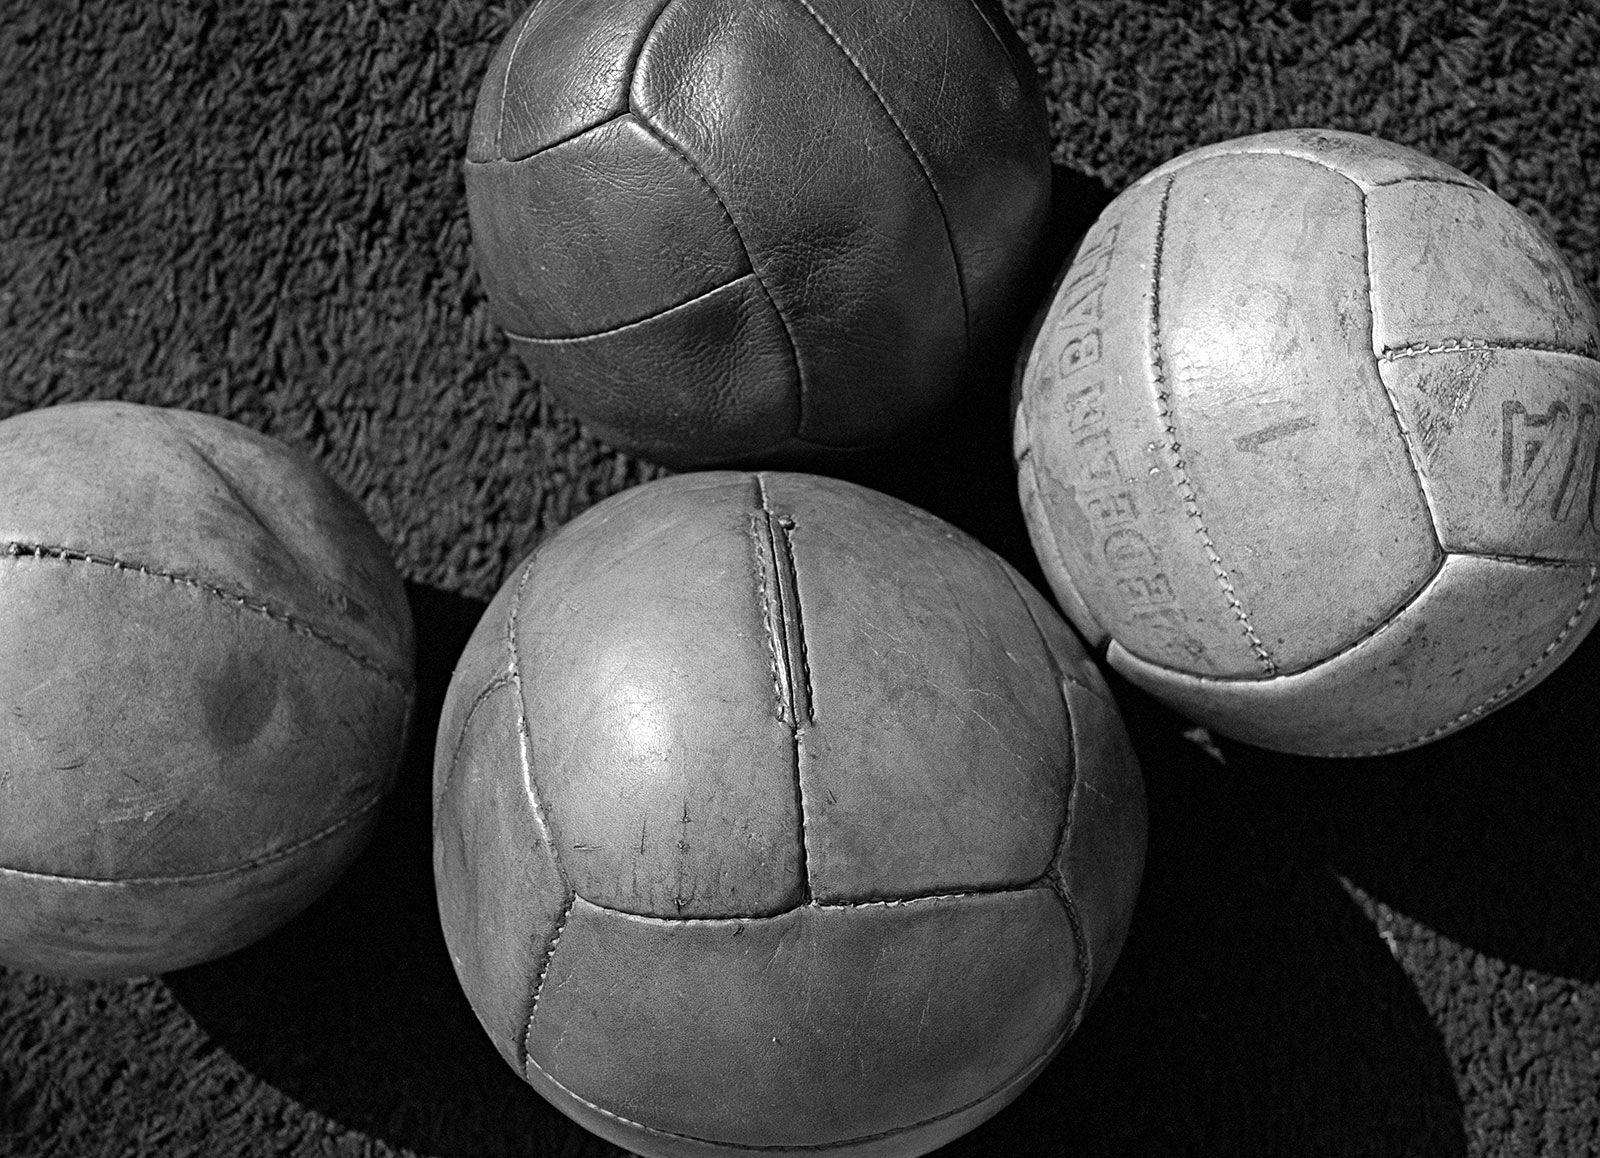 Four leather balls